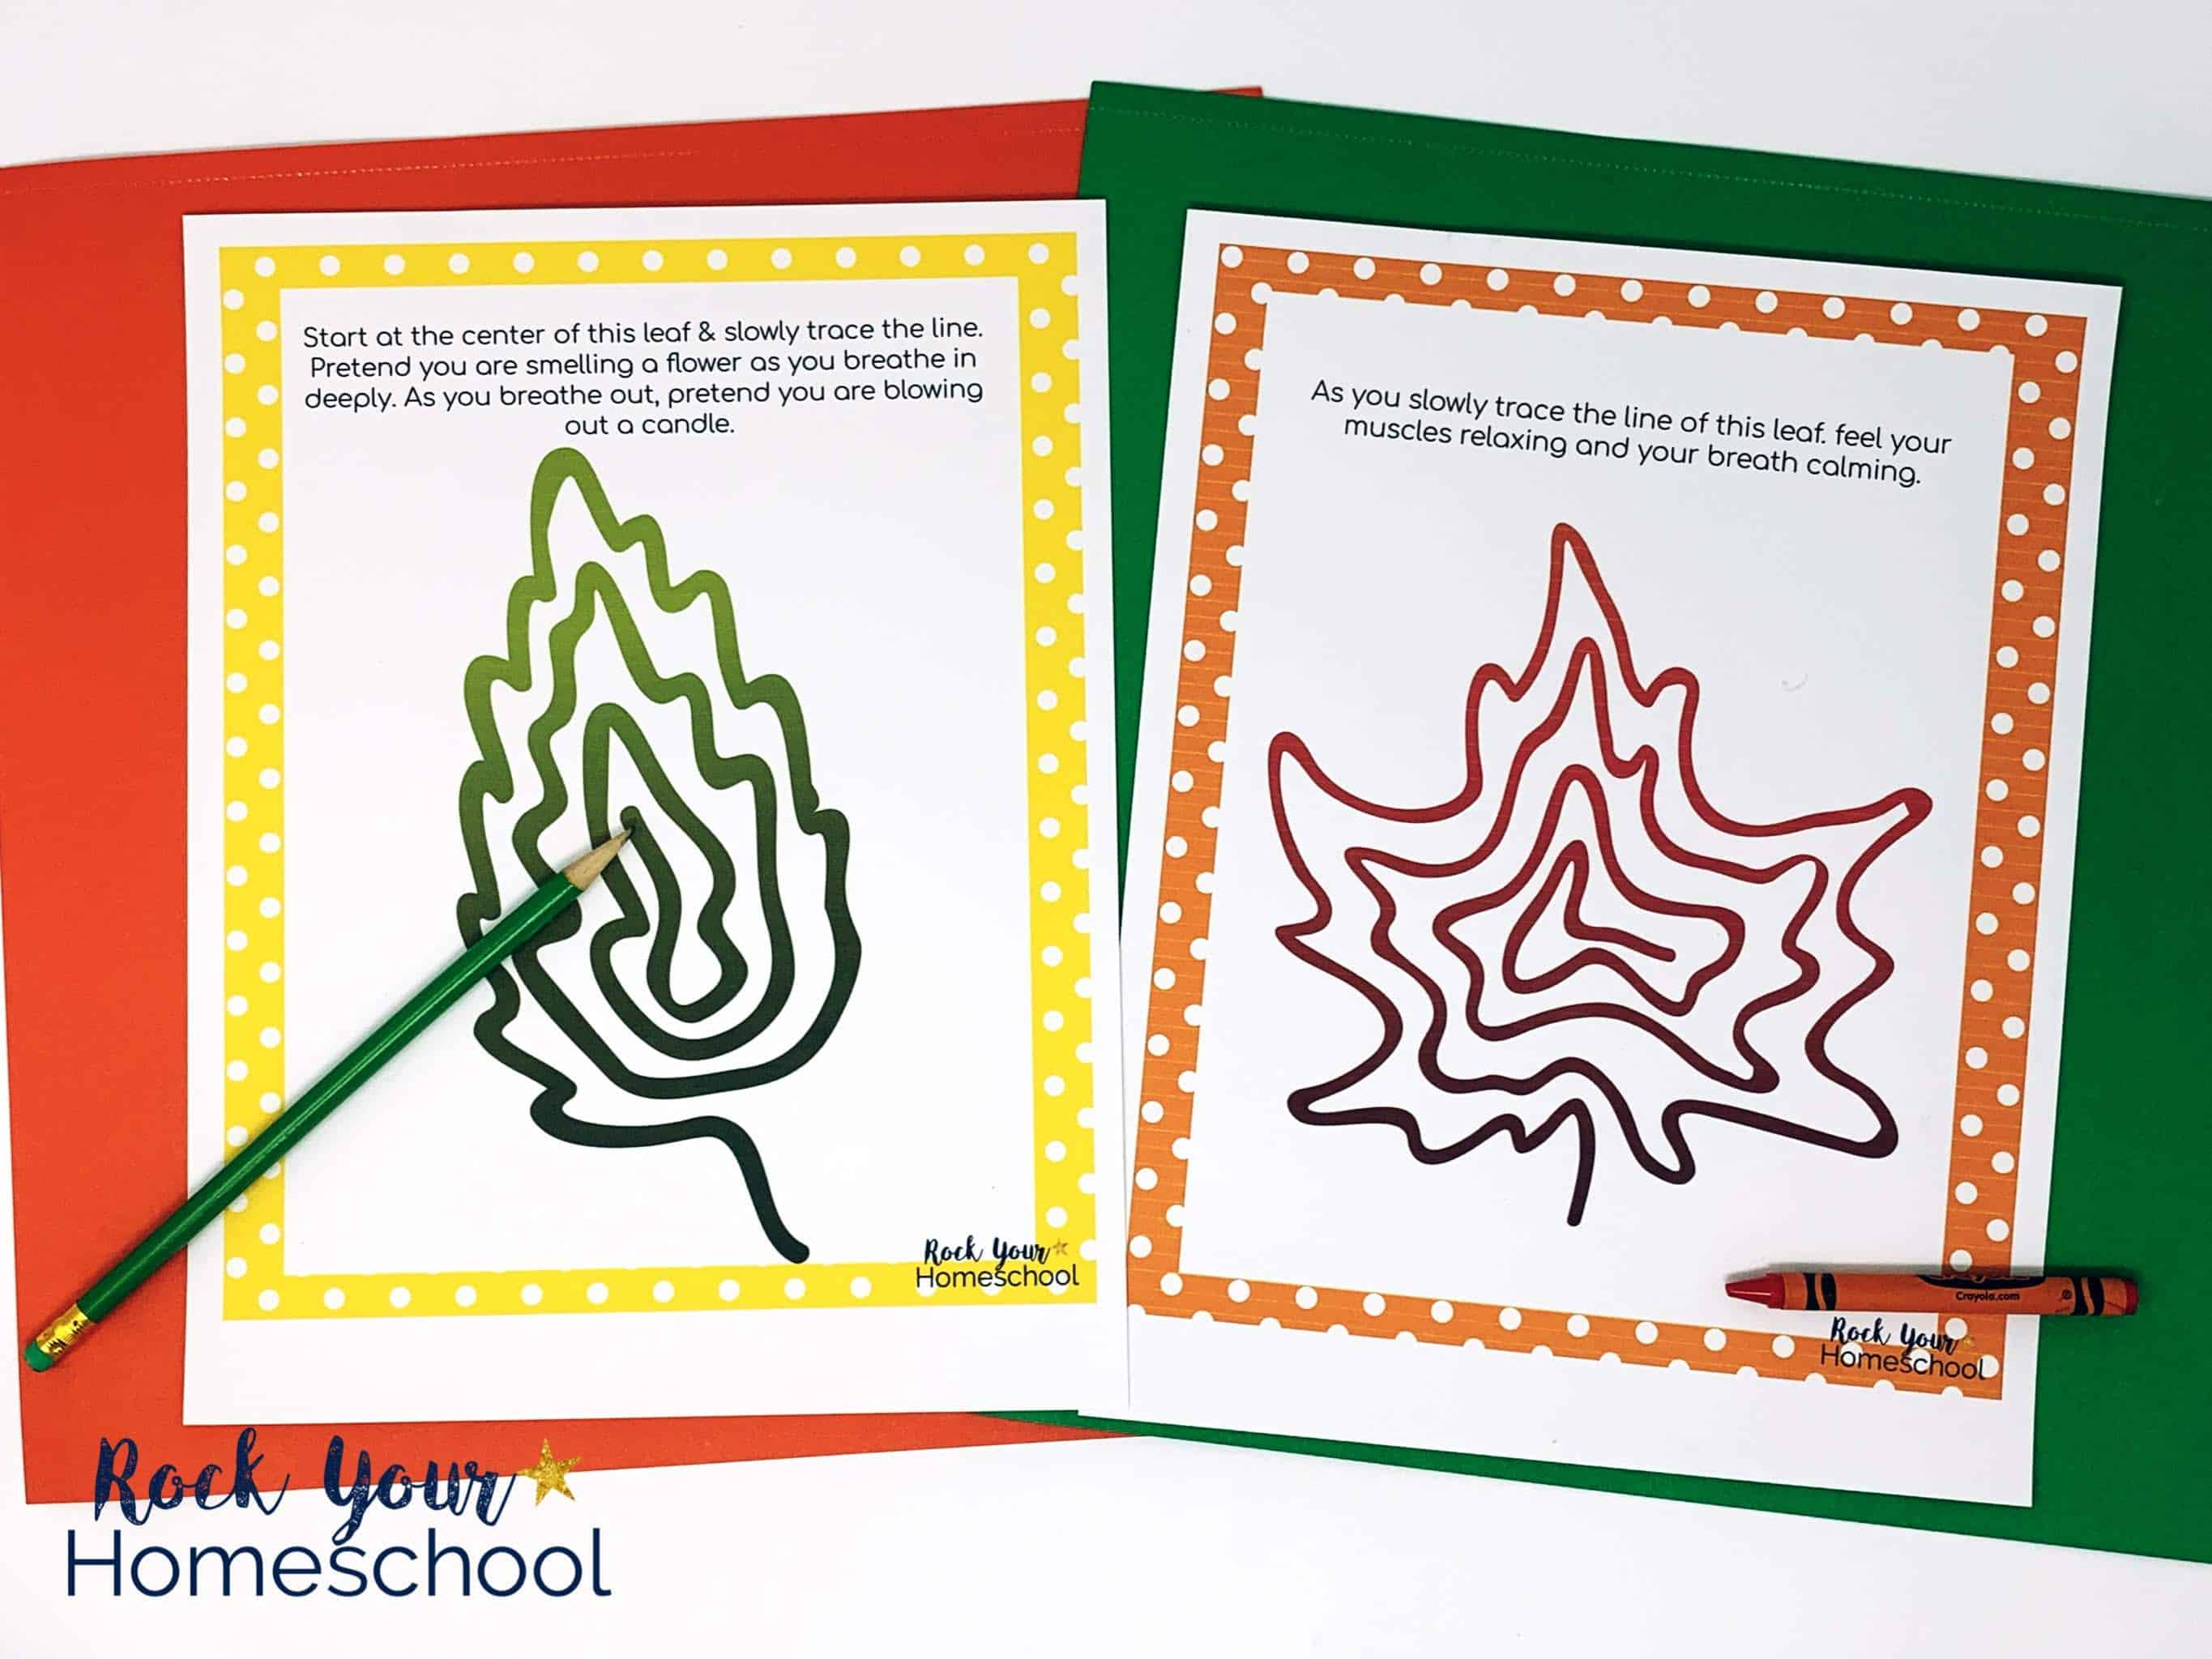 Your kids will enjoy these gentle growth mindset exercises featuring Fall foliage.